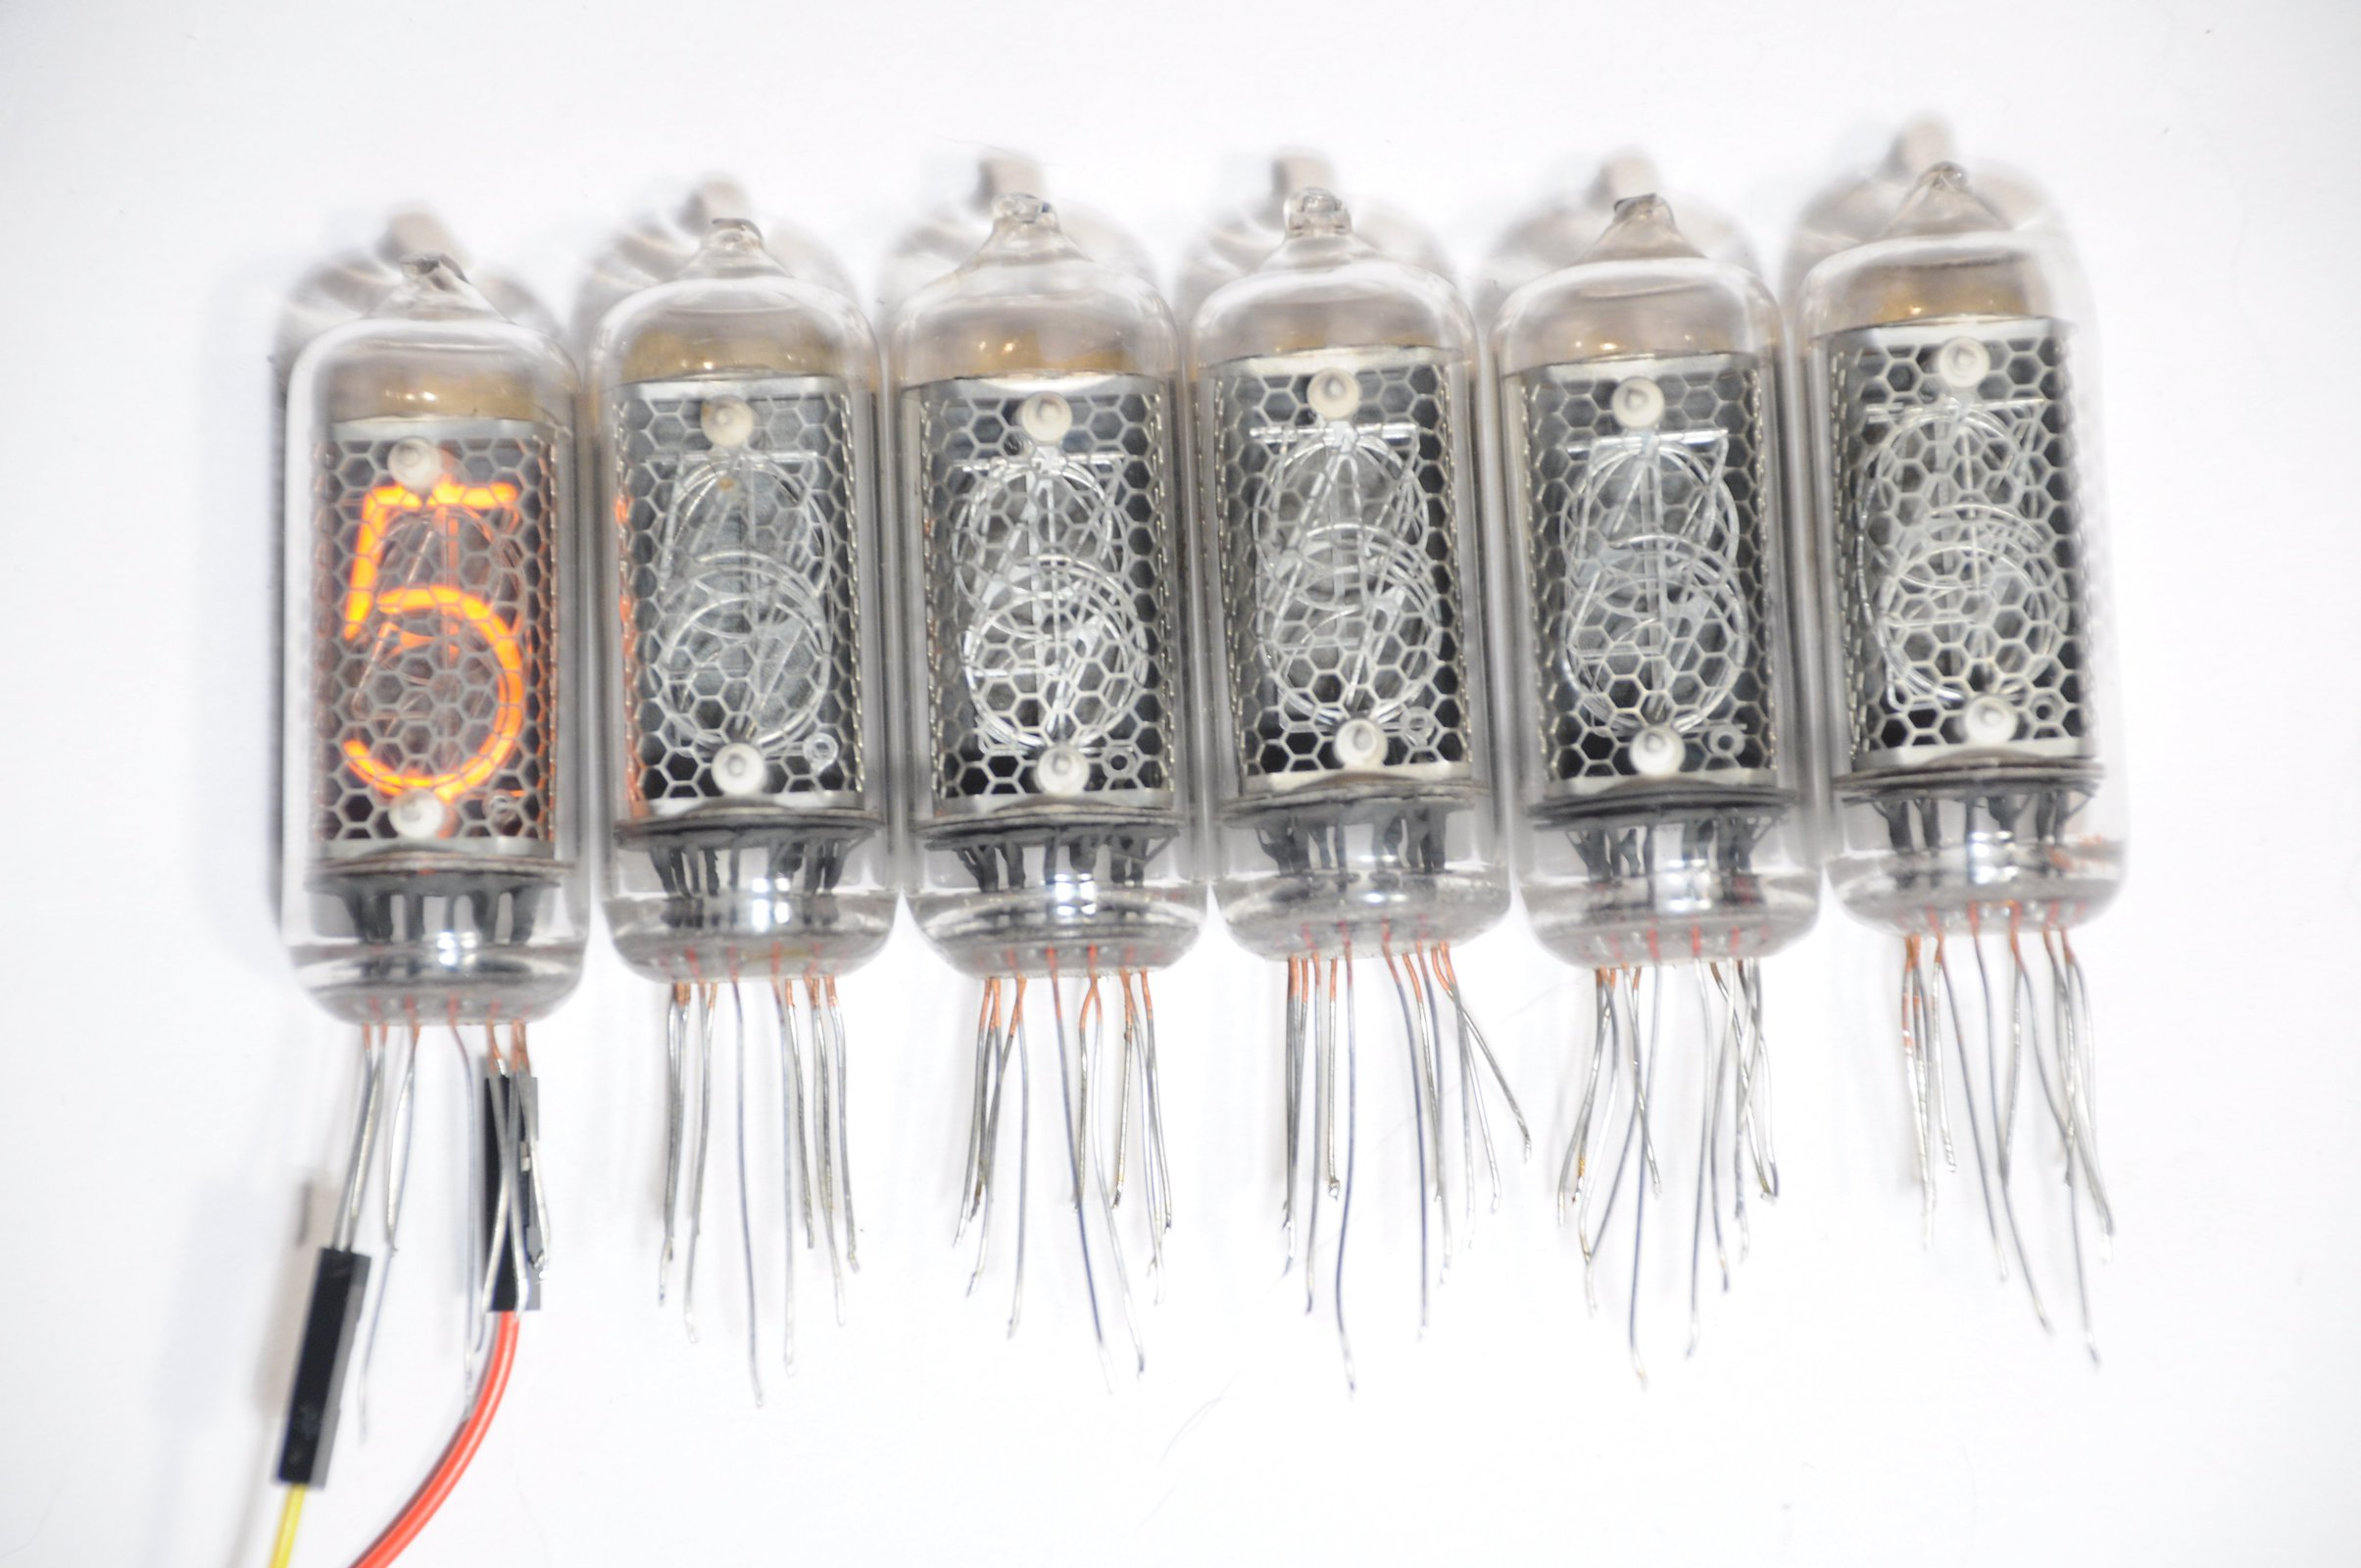 In 8 2 Rare Ussr Nixie Tube For Clock From Radiomuza On Tindie Circuit 6